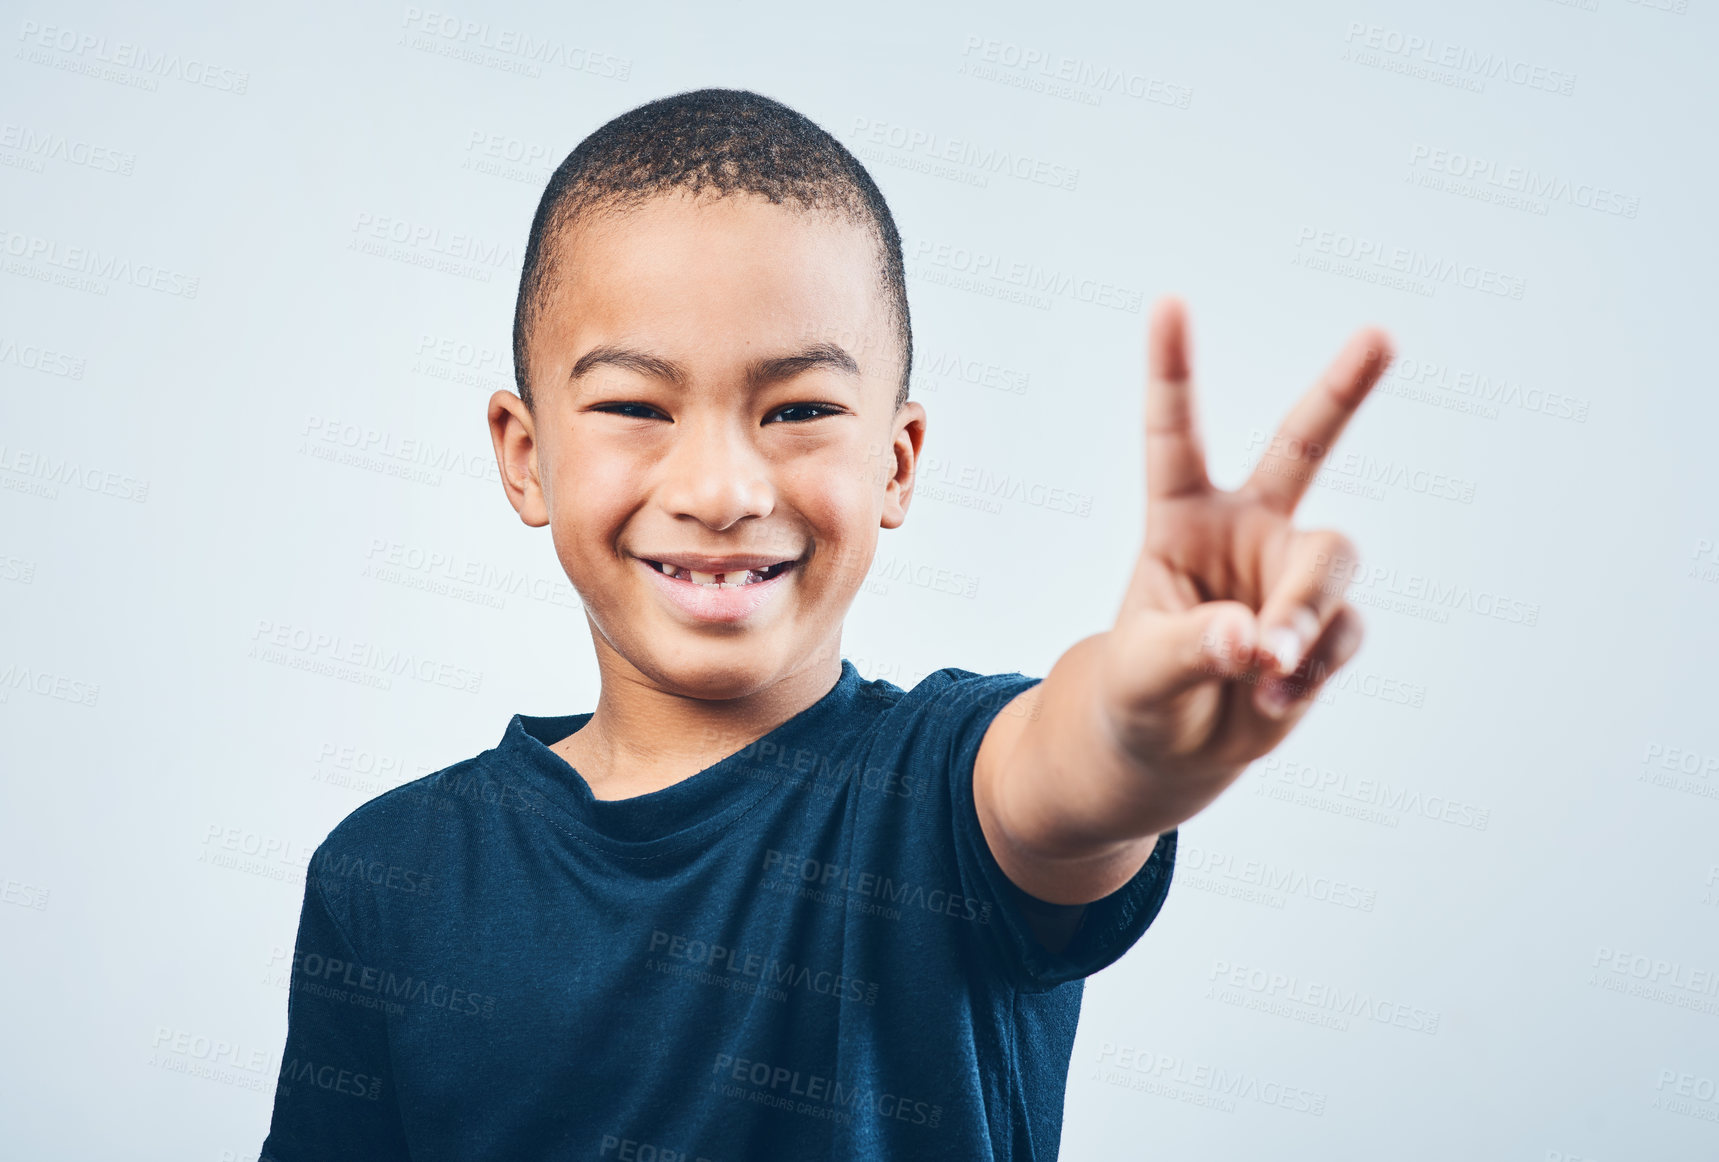 Buy stock photo Studio shot of a cute little boy making a peace sign against a grey background